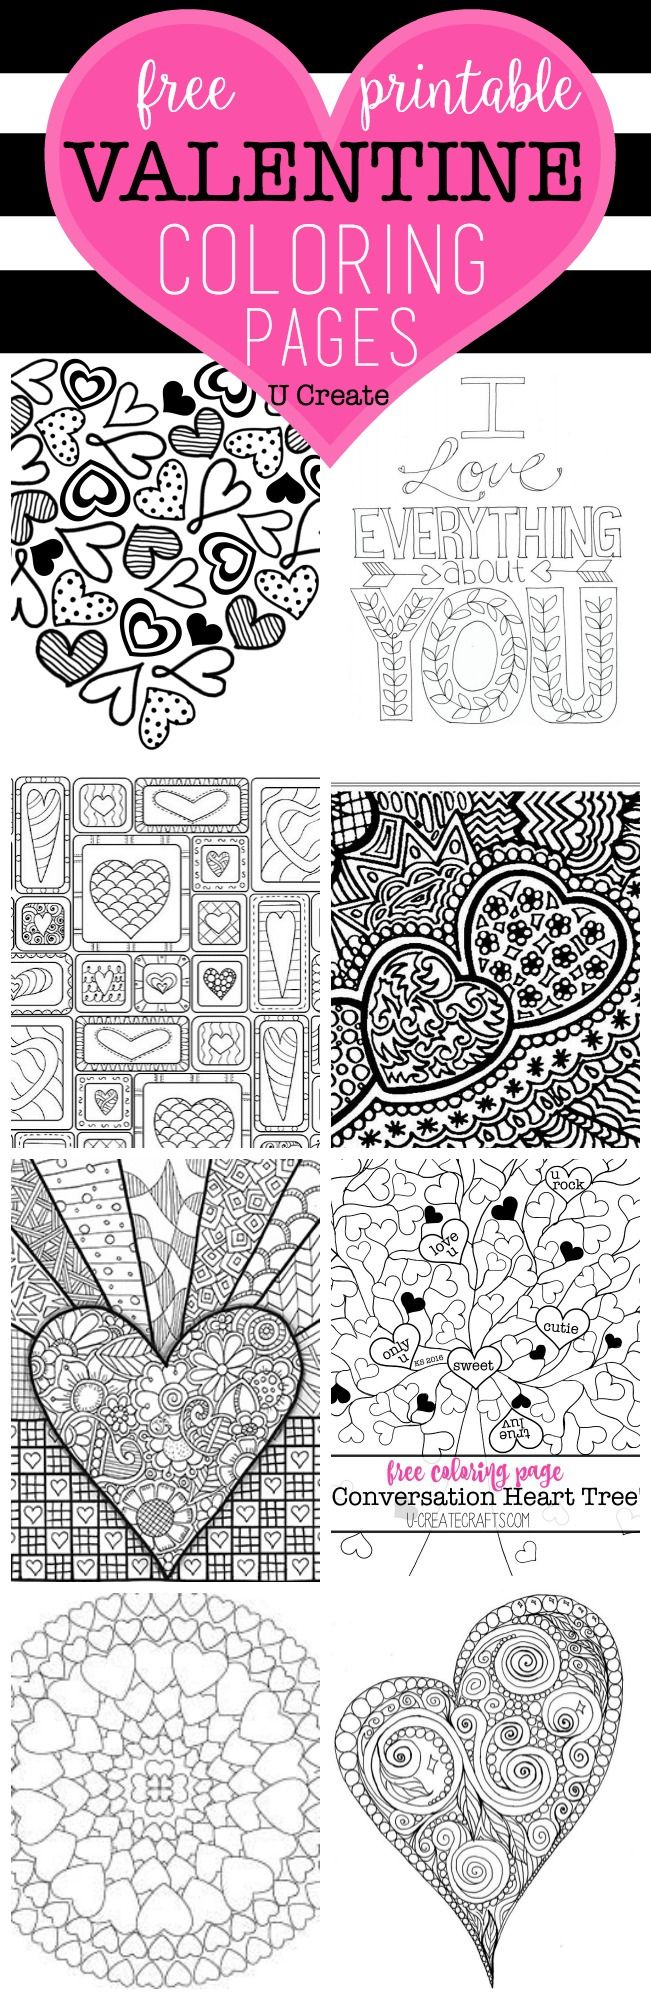 the free valentine coloring pages are here you cant walk into a store